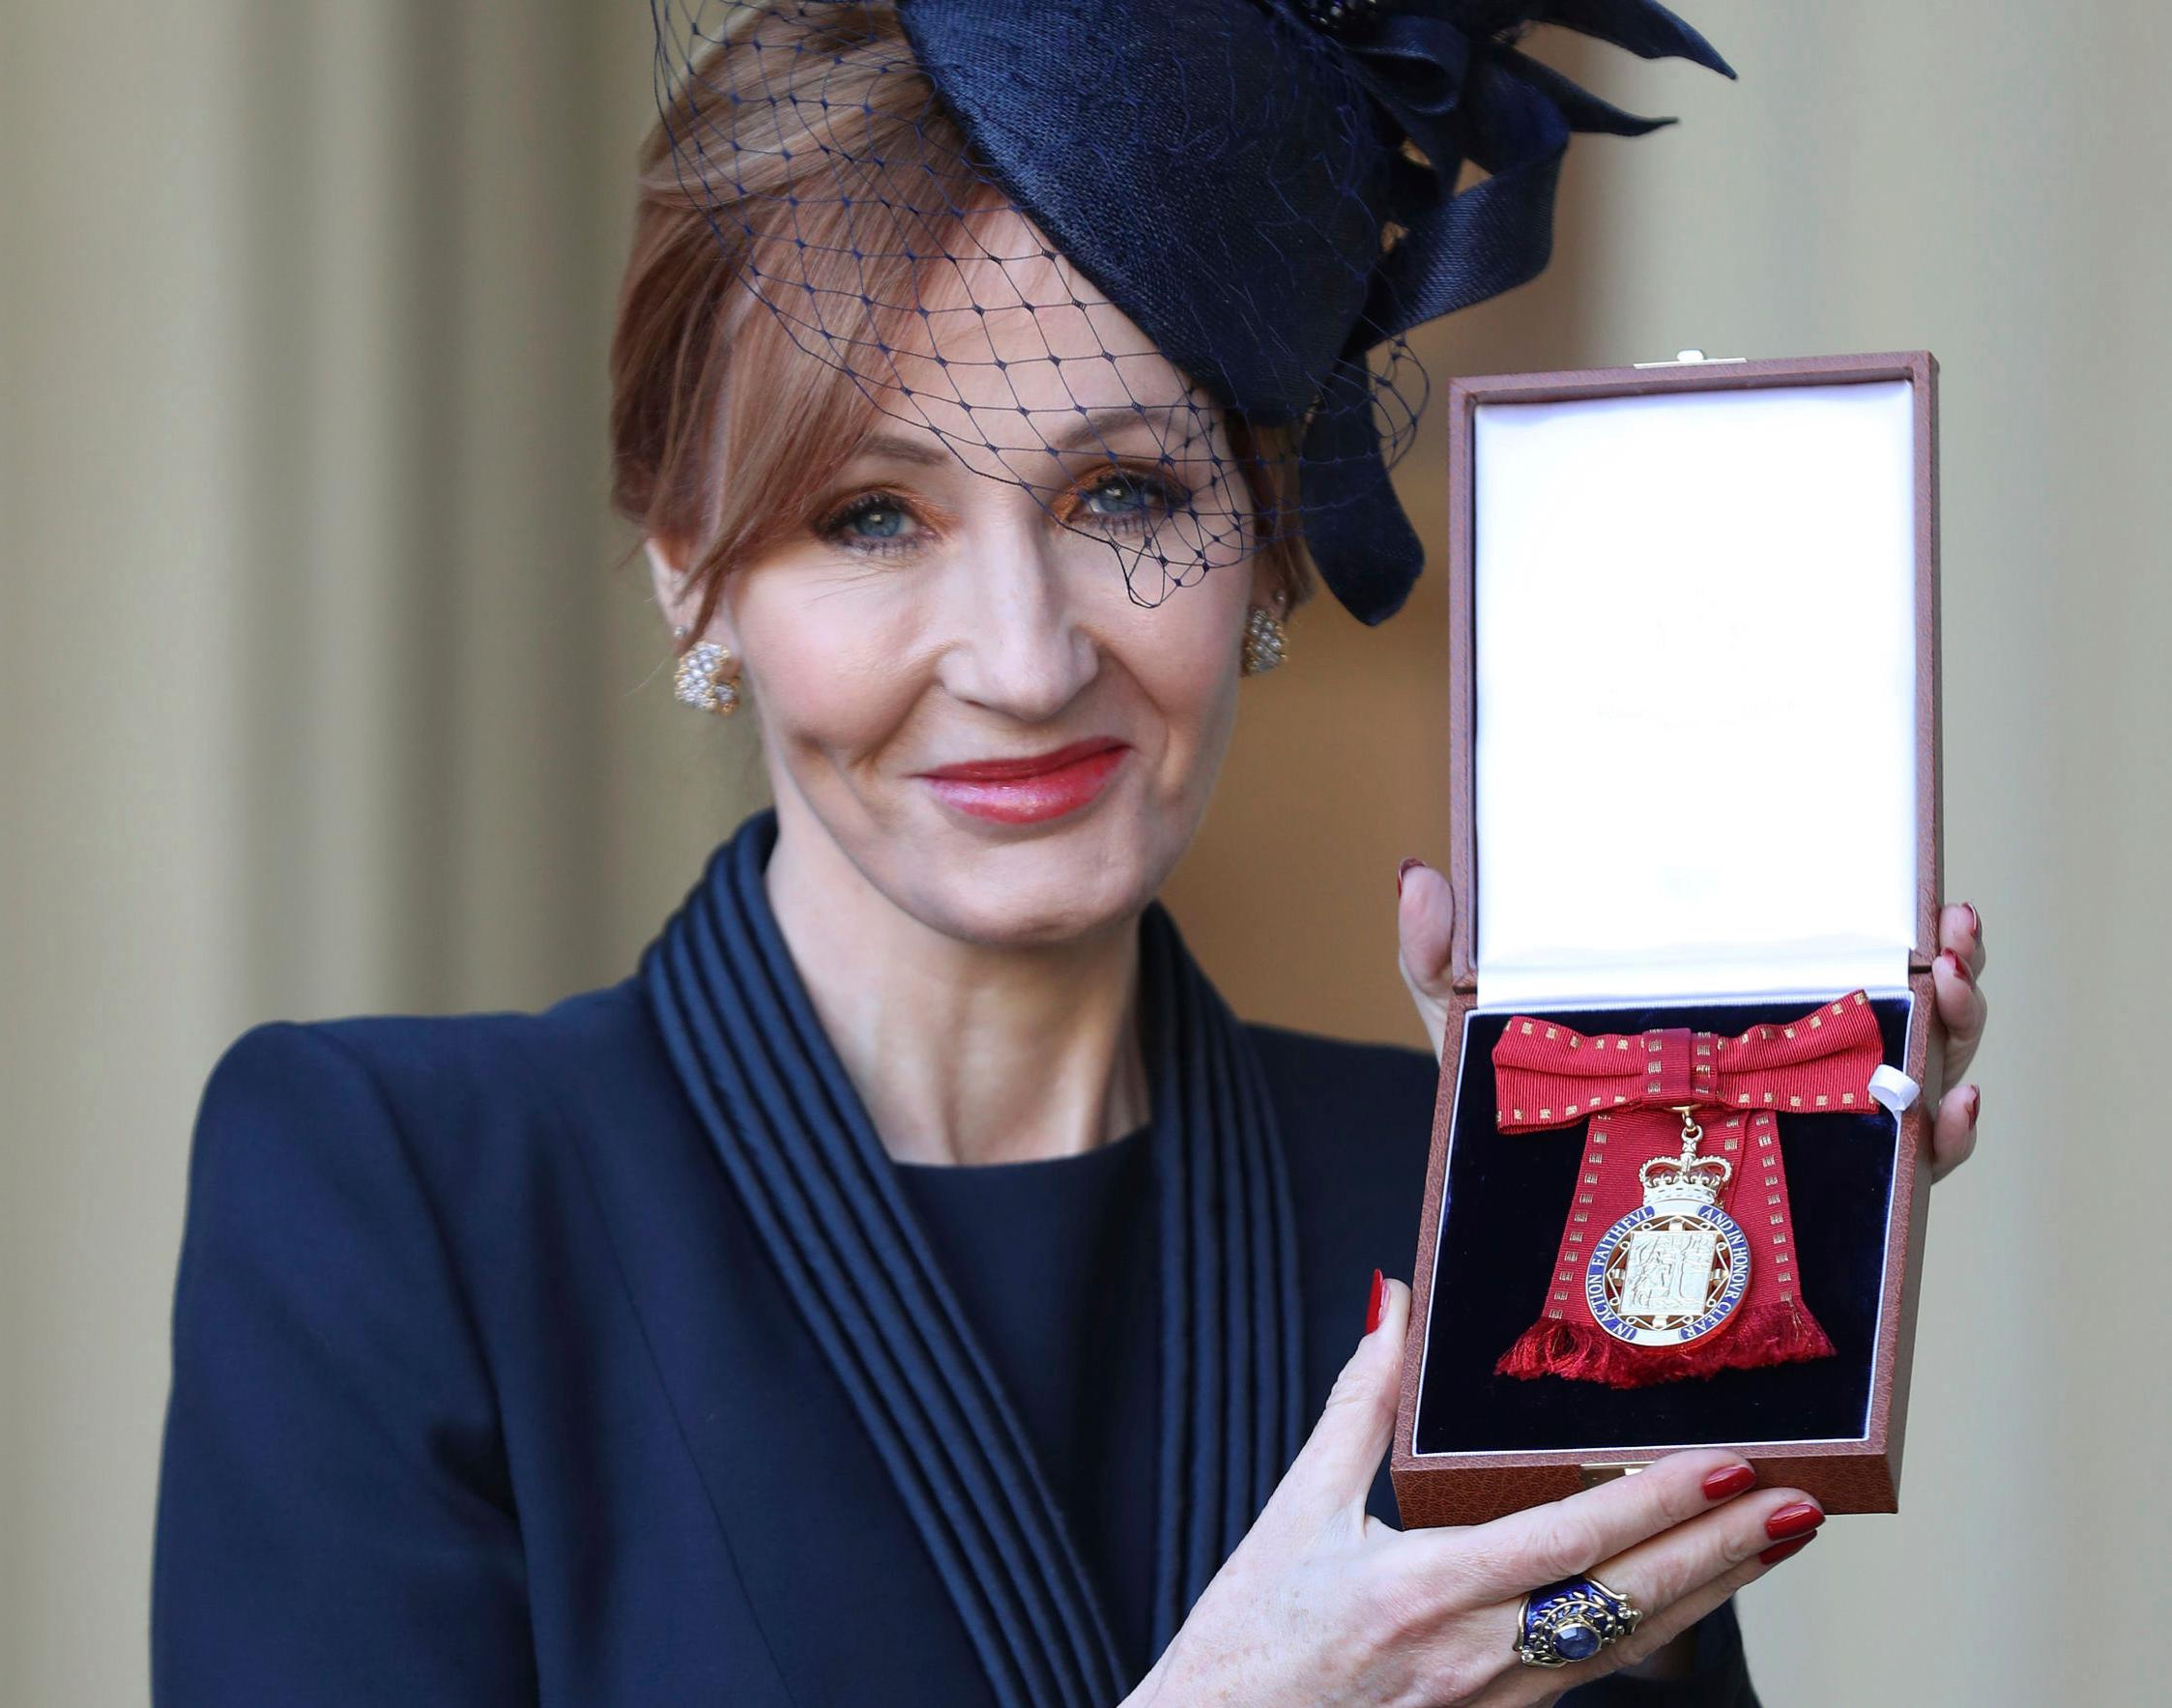 The author of the Harry Potter books,  JK Rowling poses after she was made a Companion of Honour during an Investiture ceremony at Buckingham Palace in London, Tuesday Dec. 12, 2017.  The Duke of Cambridge conducted the investiture for the honour. (Andrew Matthews/Pool via AP)